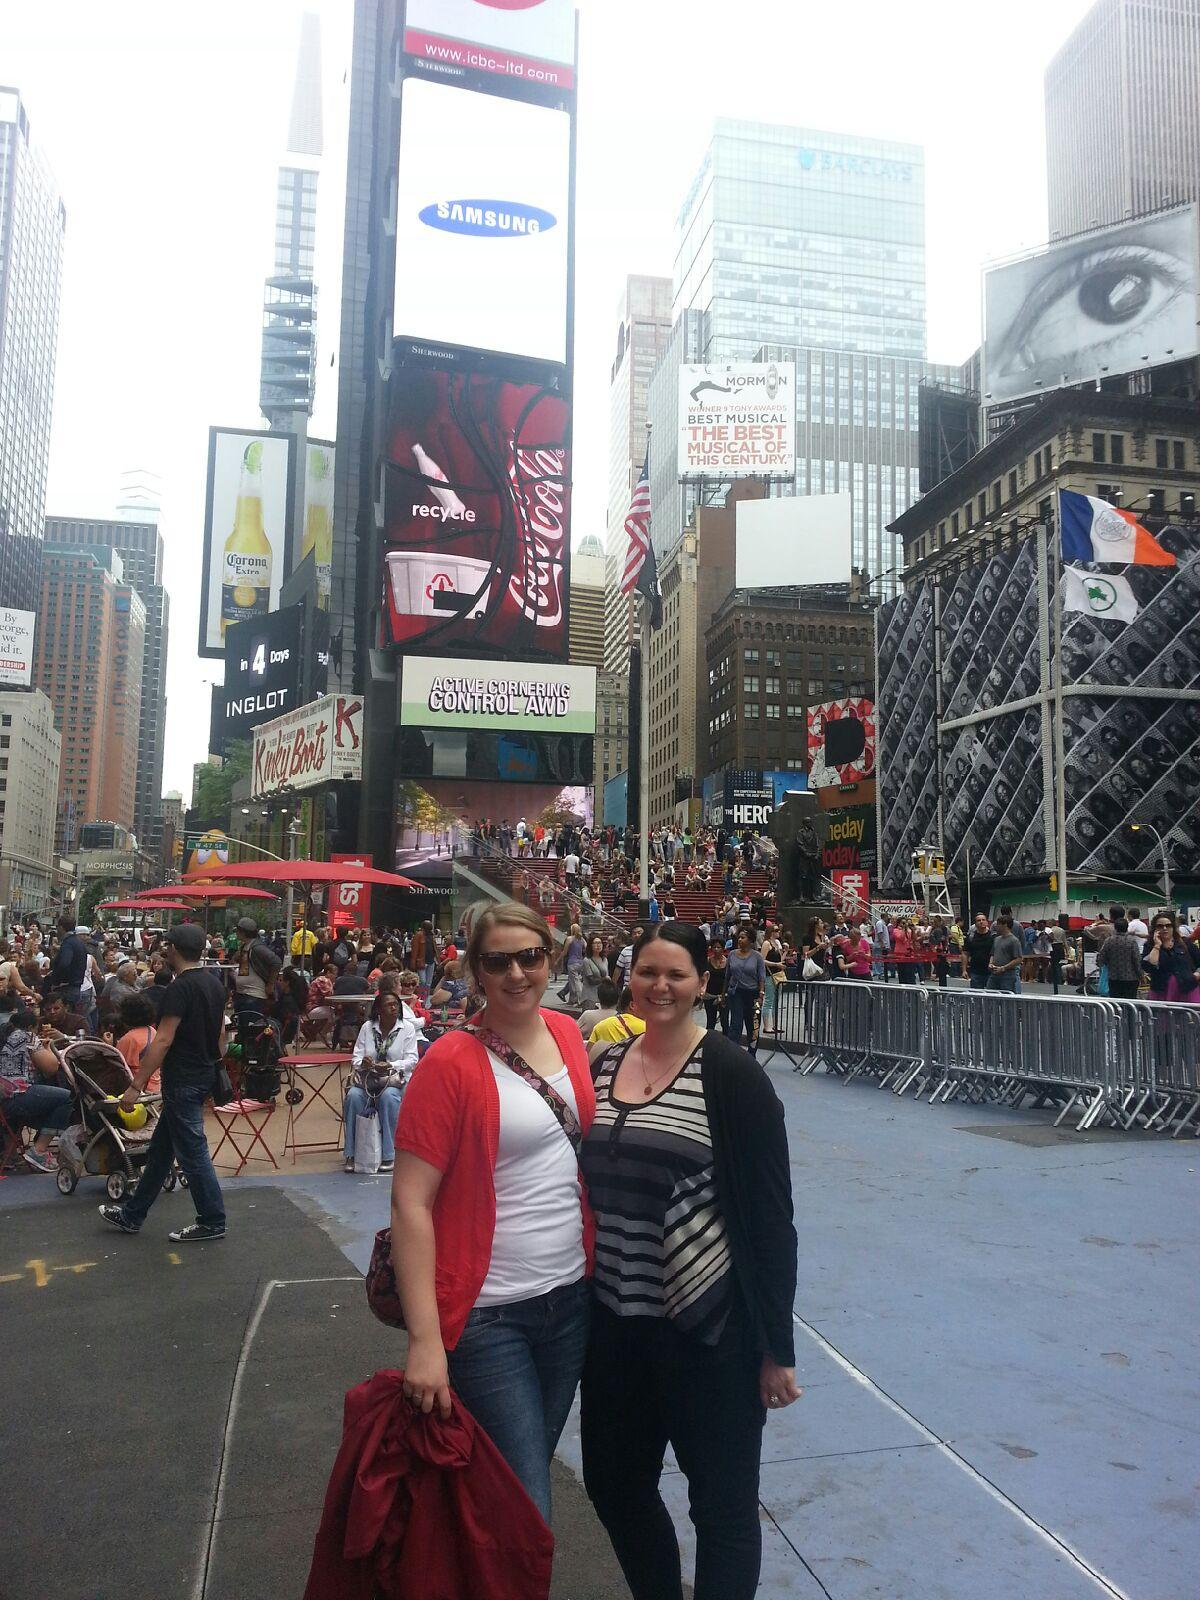 Me & Jordan in Time's Square June 8, 2013jpeg